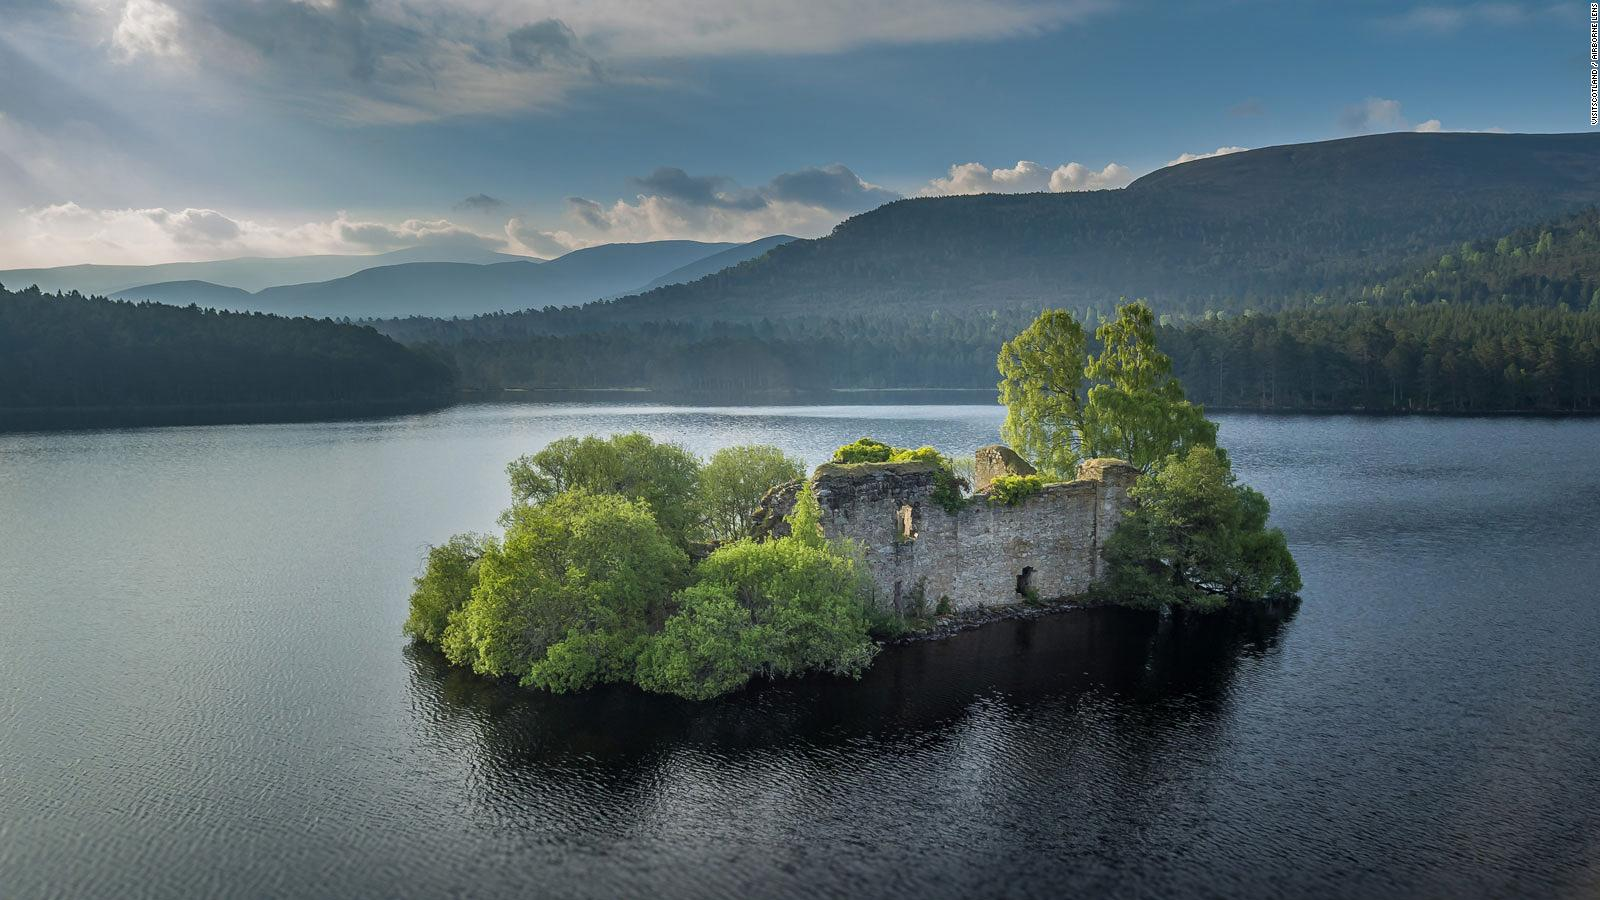 UK places to visit: 25 of the best spots | CNN Travel